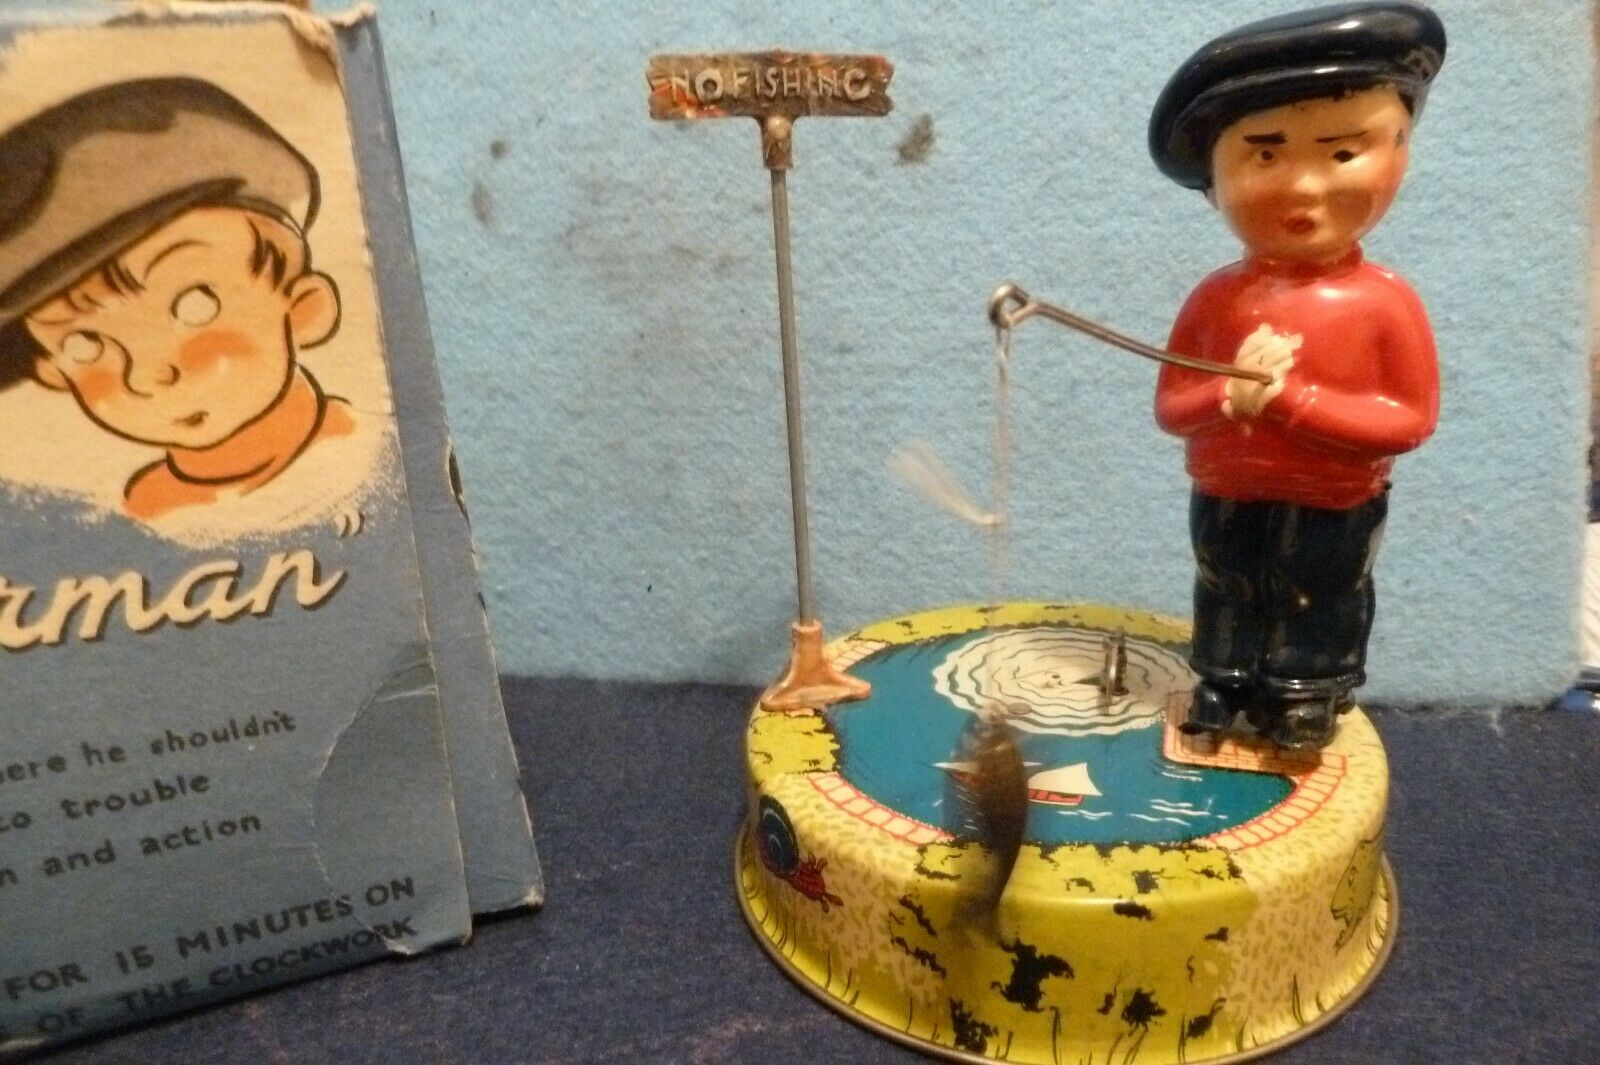 bilLY FIERMAN RARE ITEM CLOCKWORK ENGLAND